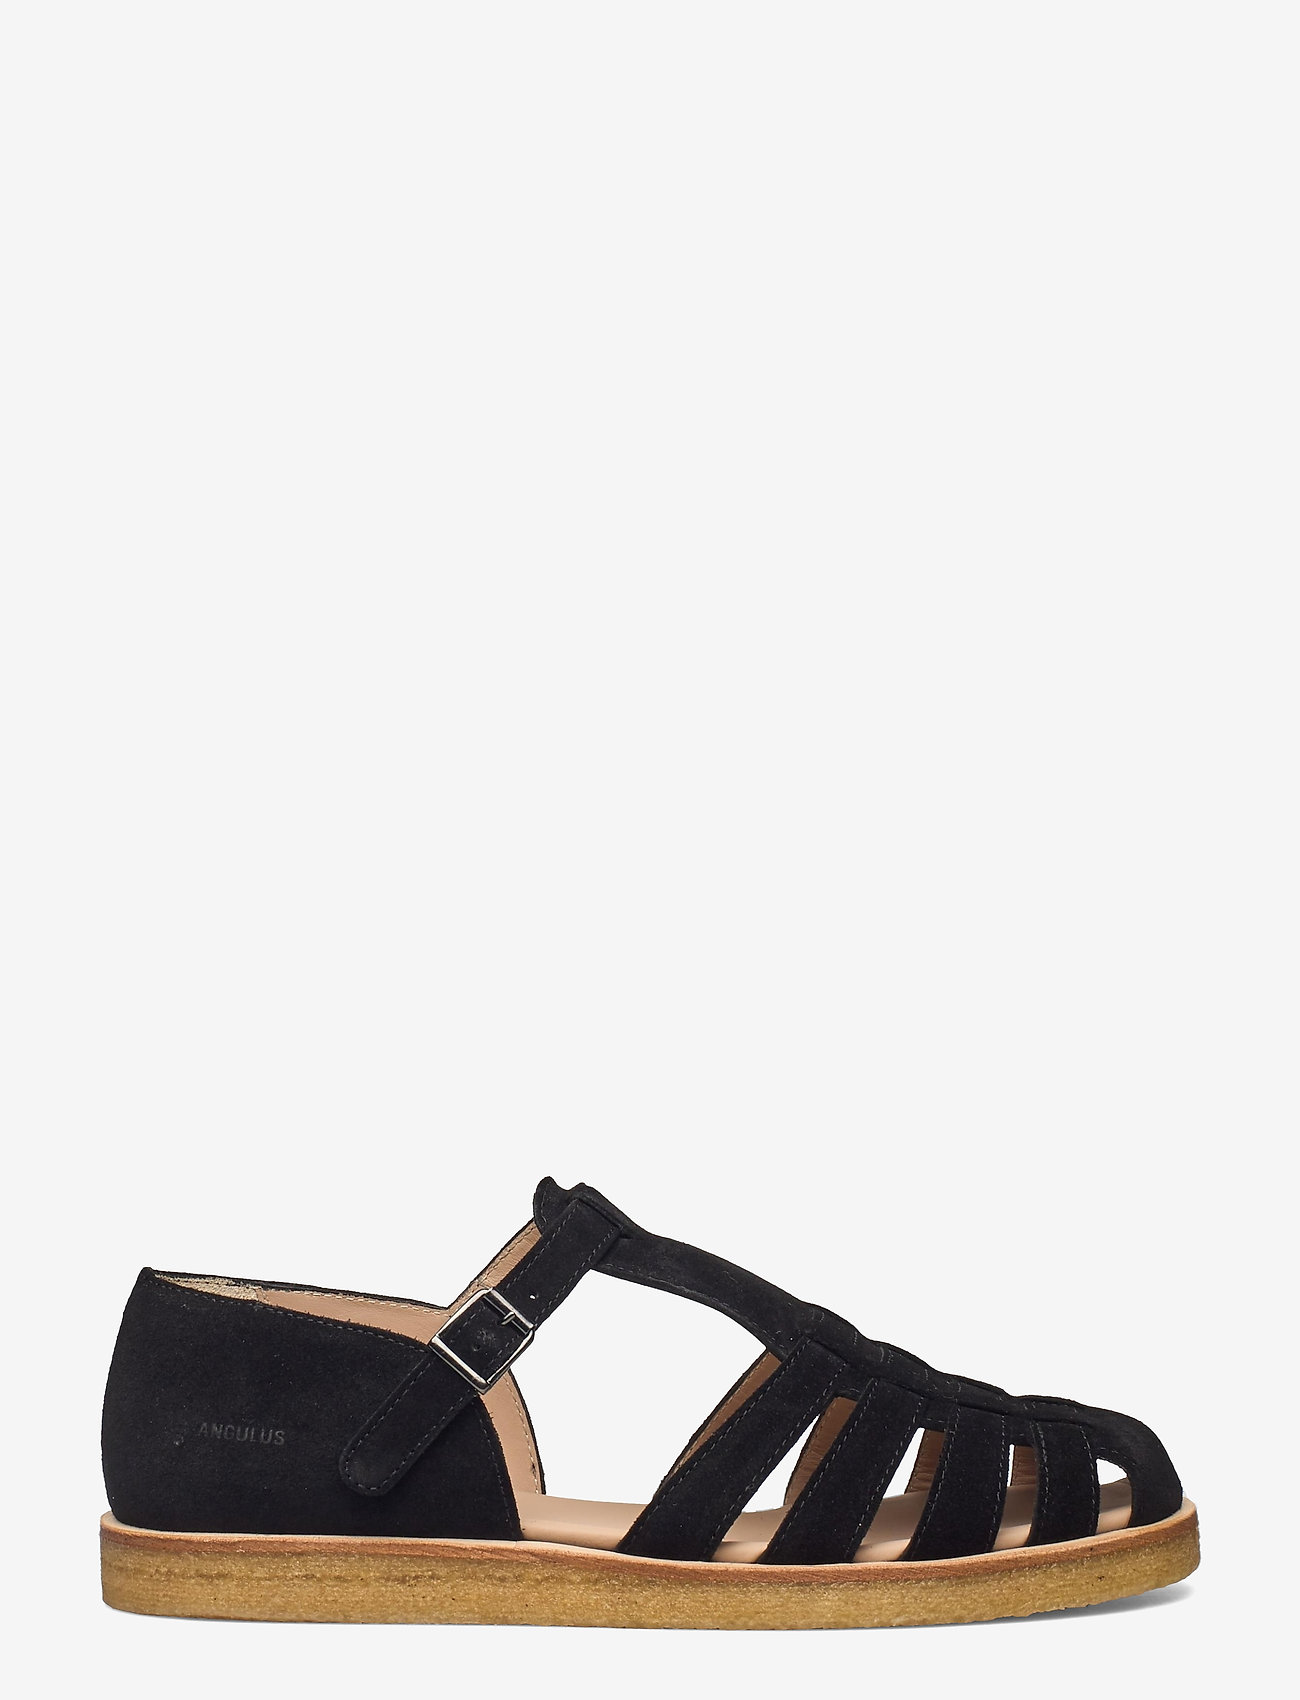 ANGULUS - Sandals - flat - closed toe - op - flache sandalen - 1163 black - 1